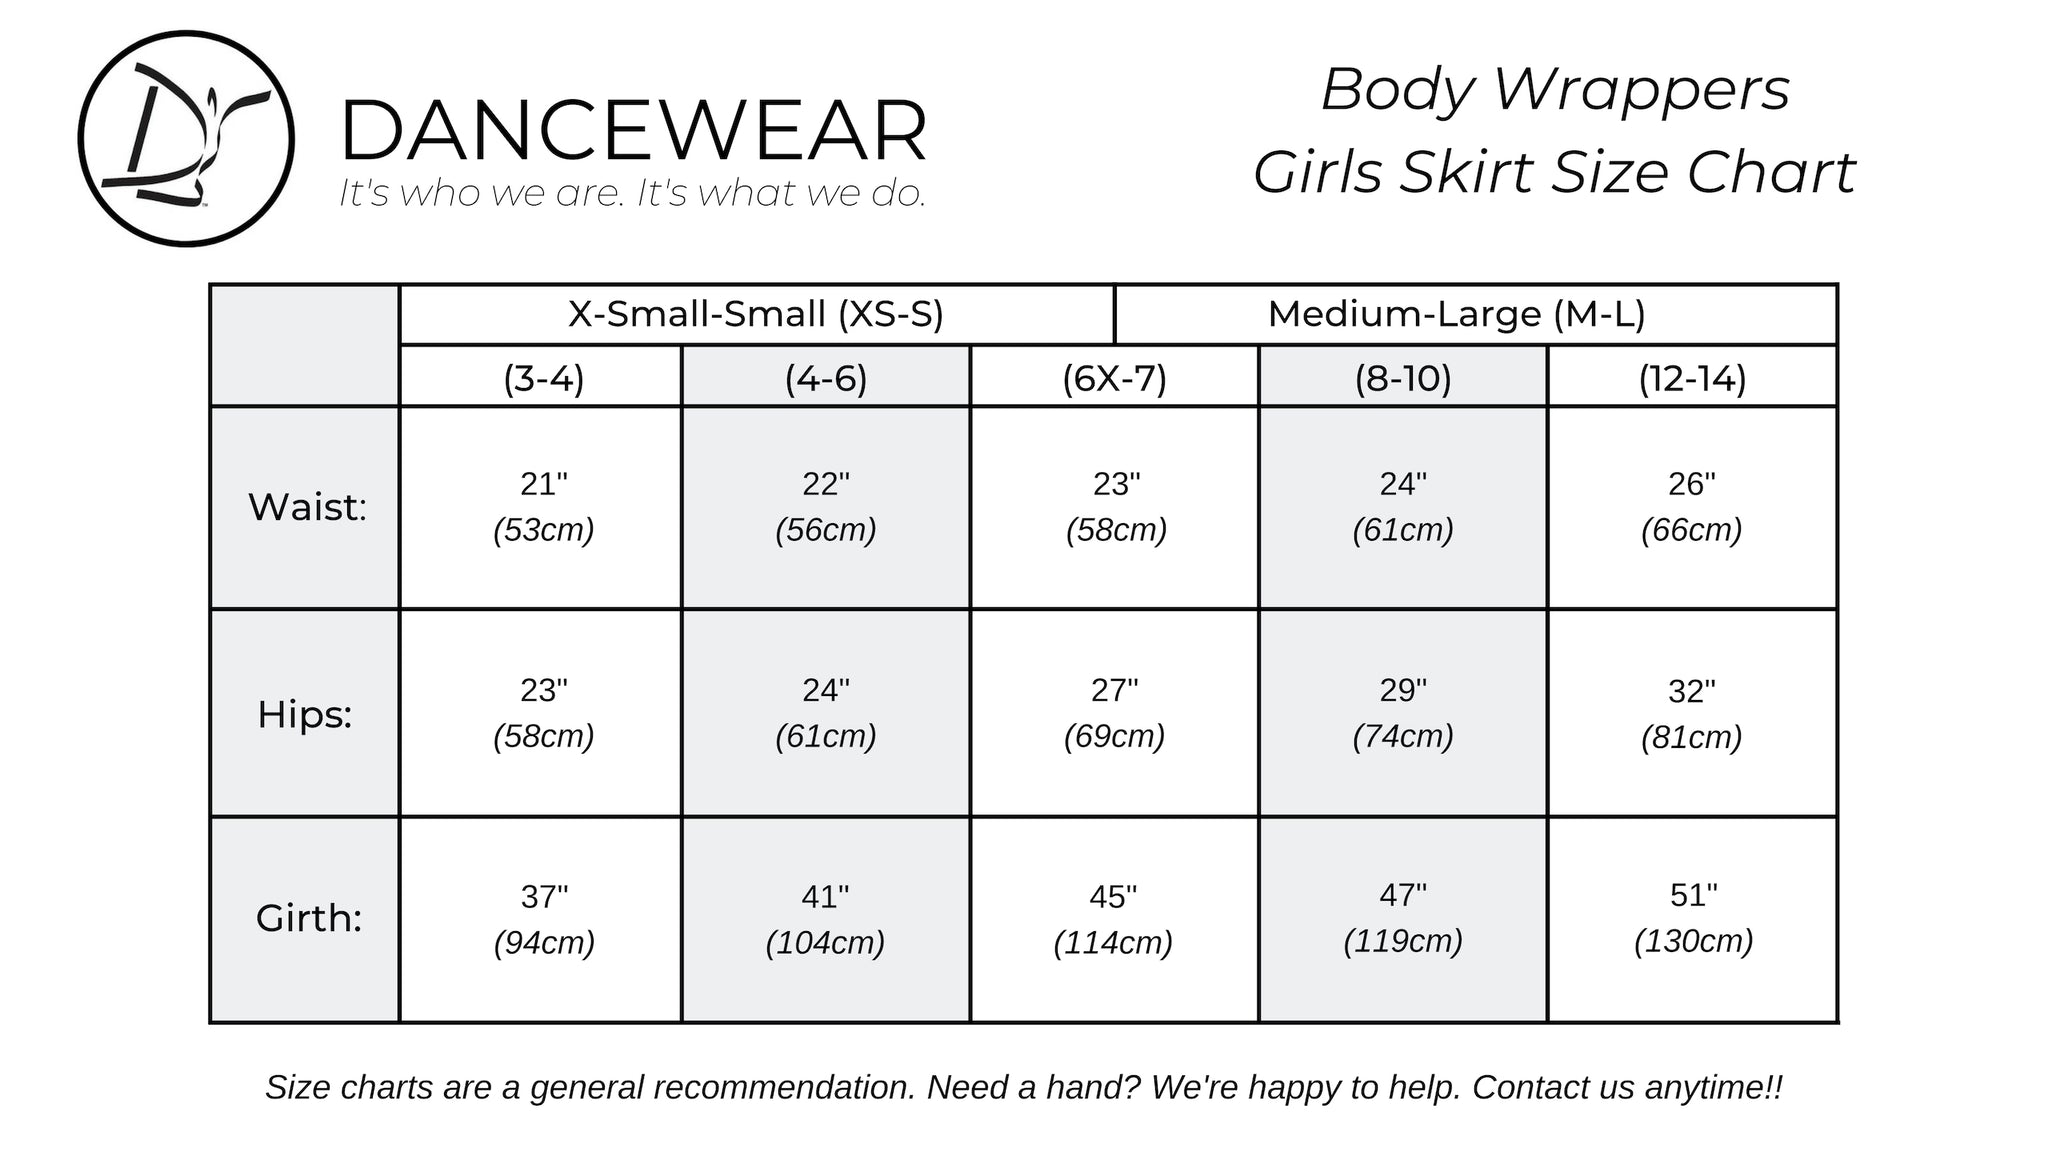 Body Wrappers Girls Skirt Size Chart